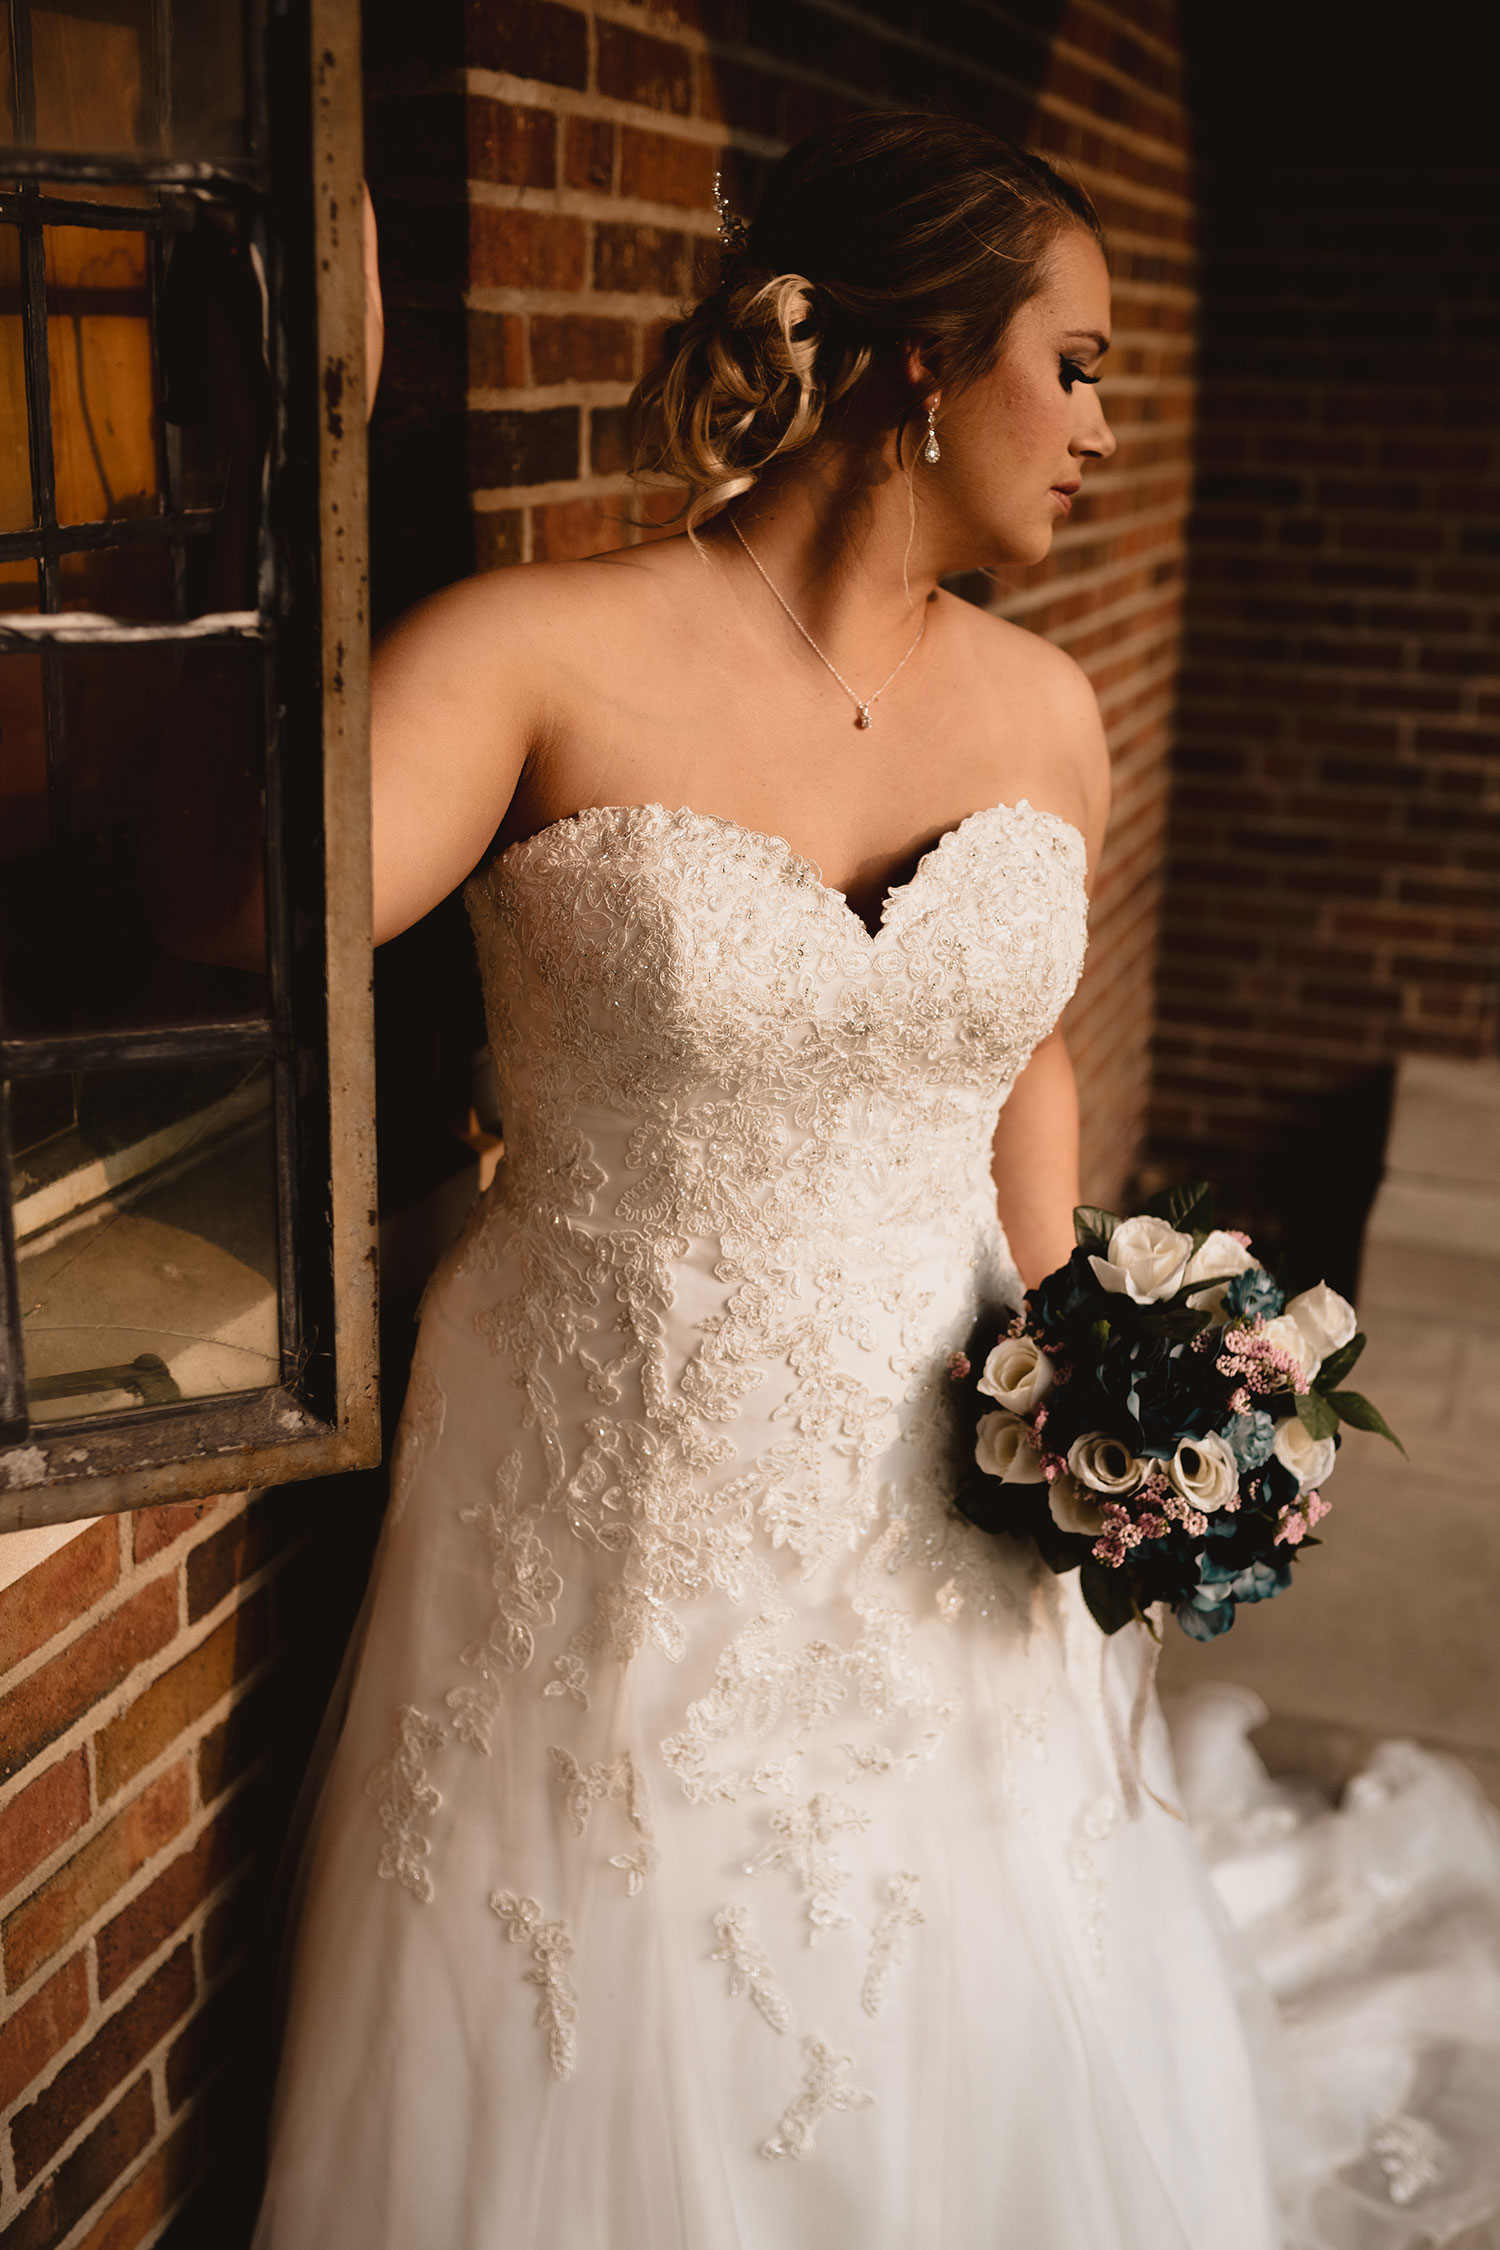 bride-portrait-standing-next-to-brick-in-sunlight-decades-event-center-building-desmoines-iowa-raelyn-ramey-photography..jpg